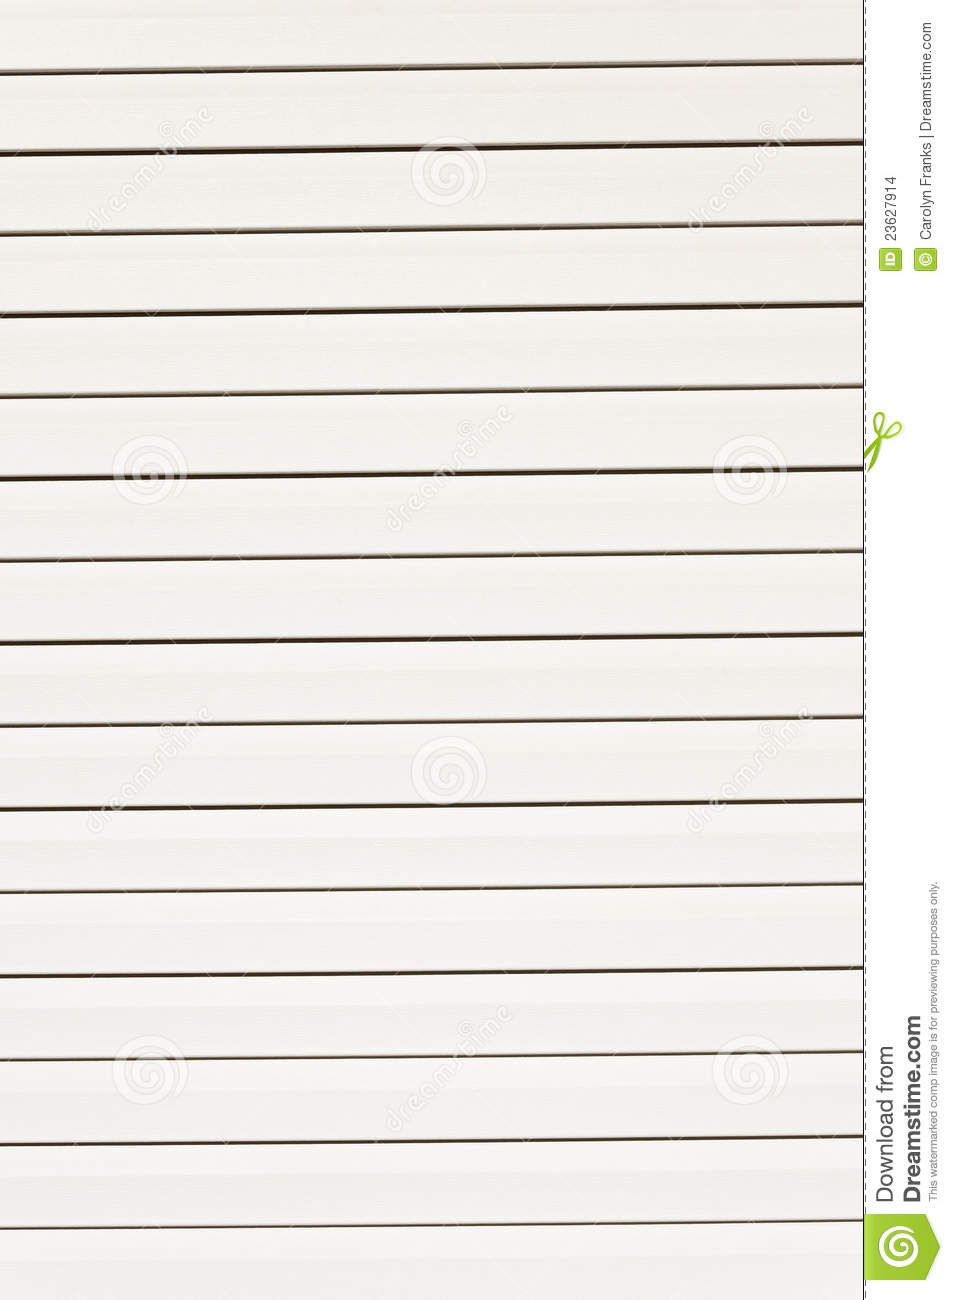 Sheet Of Lined Paper Images Image 23627914 – Vertical Lined Paper